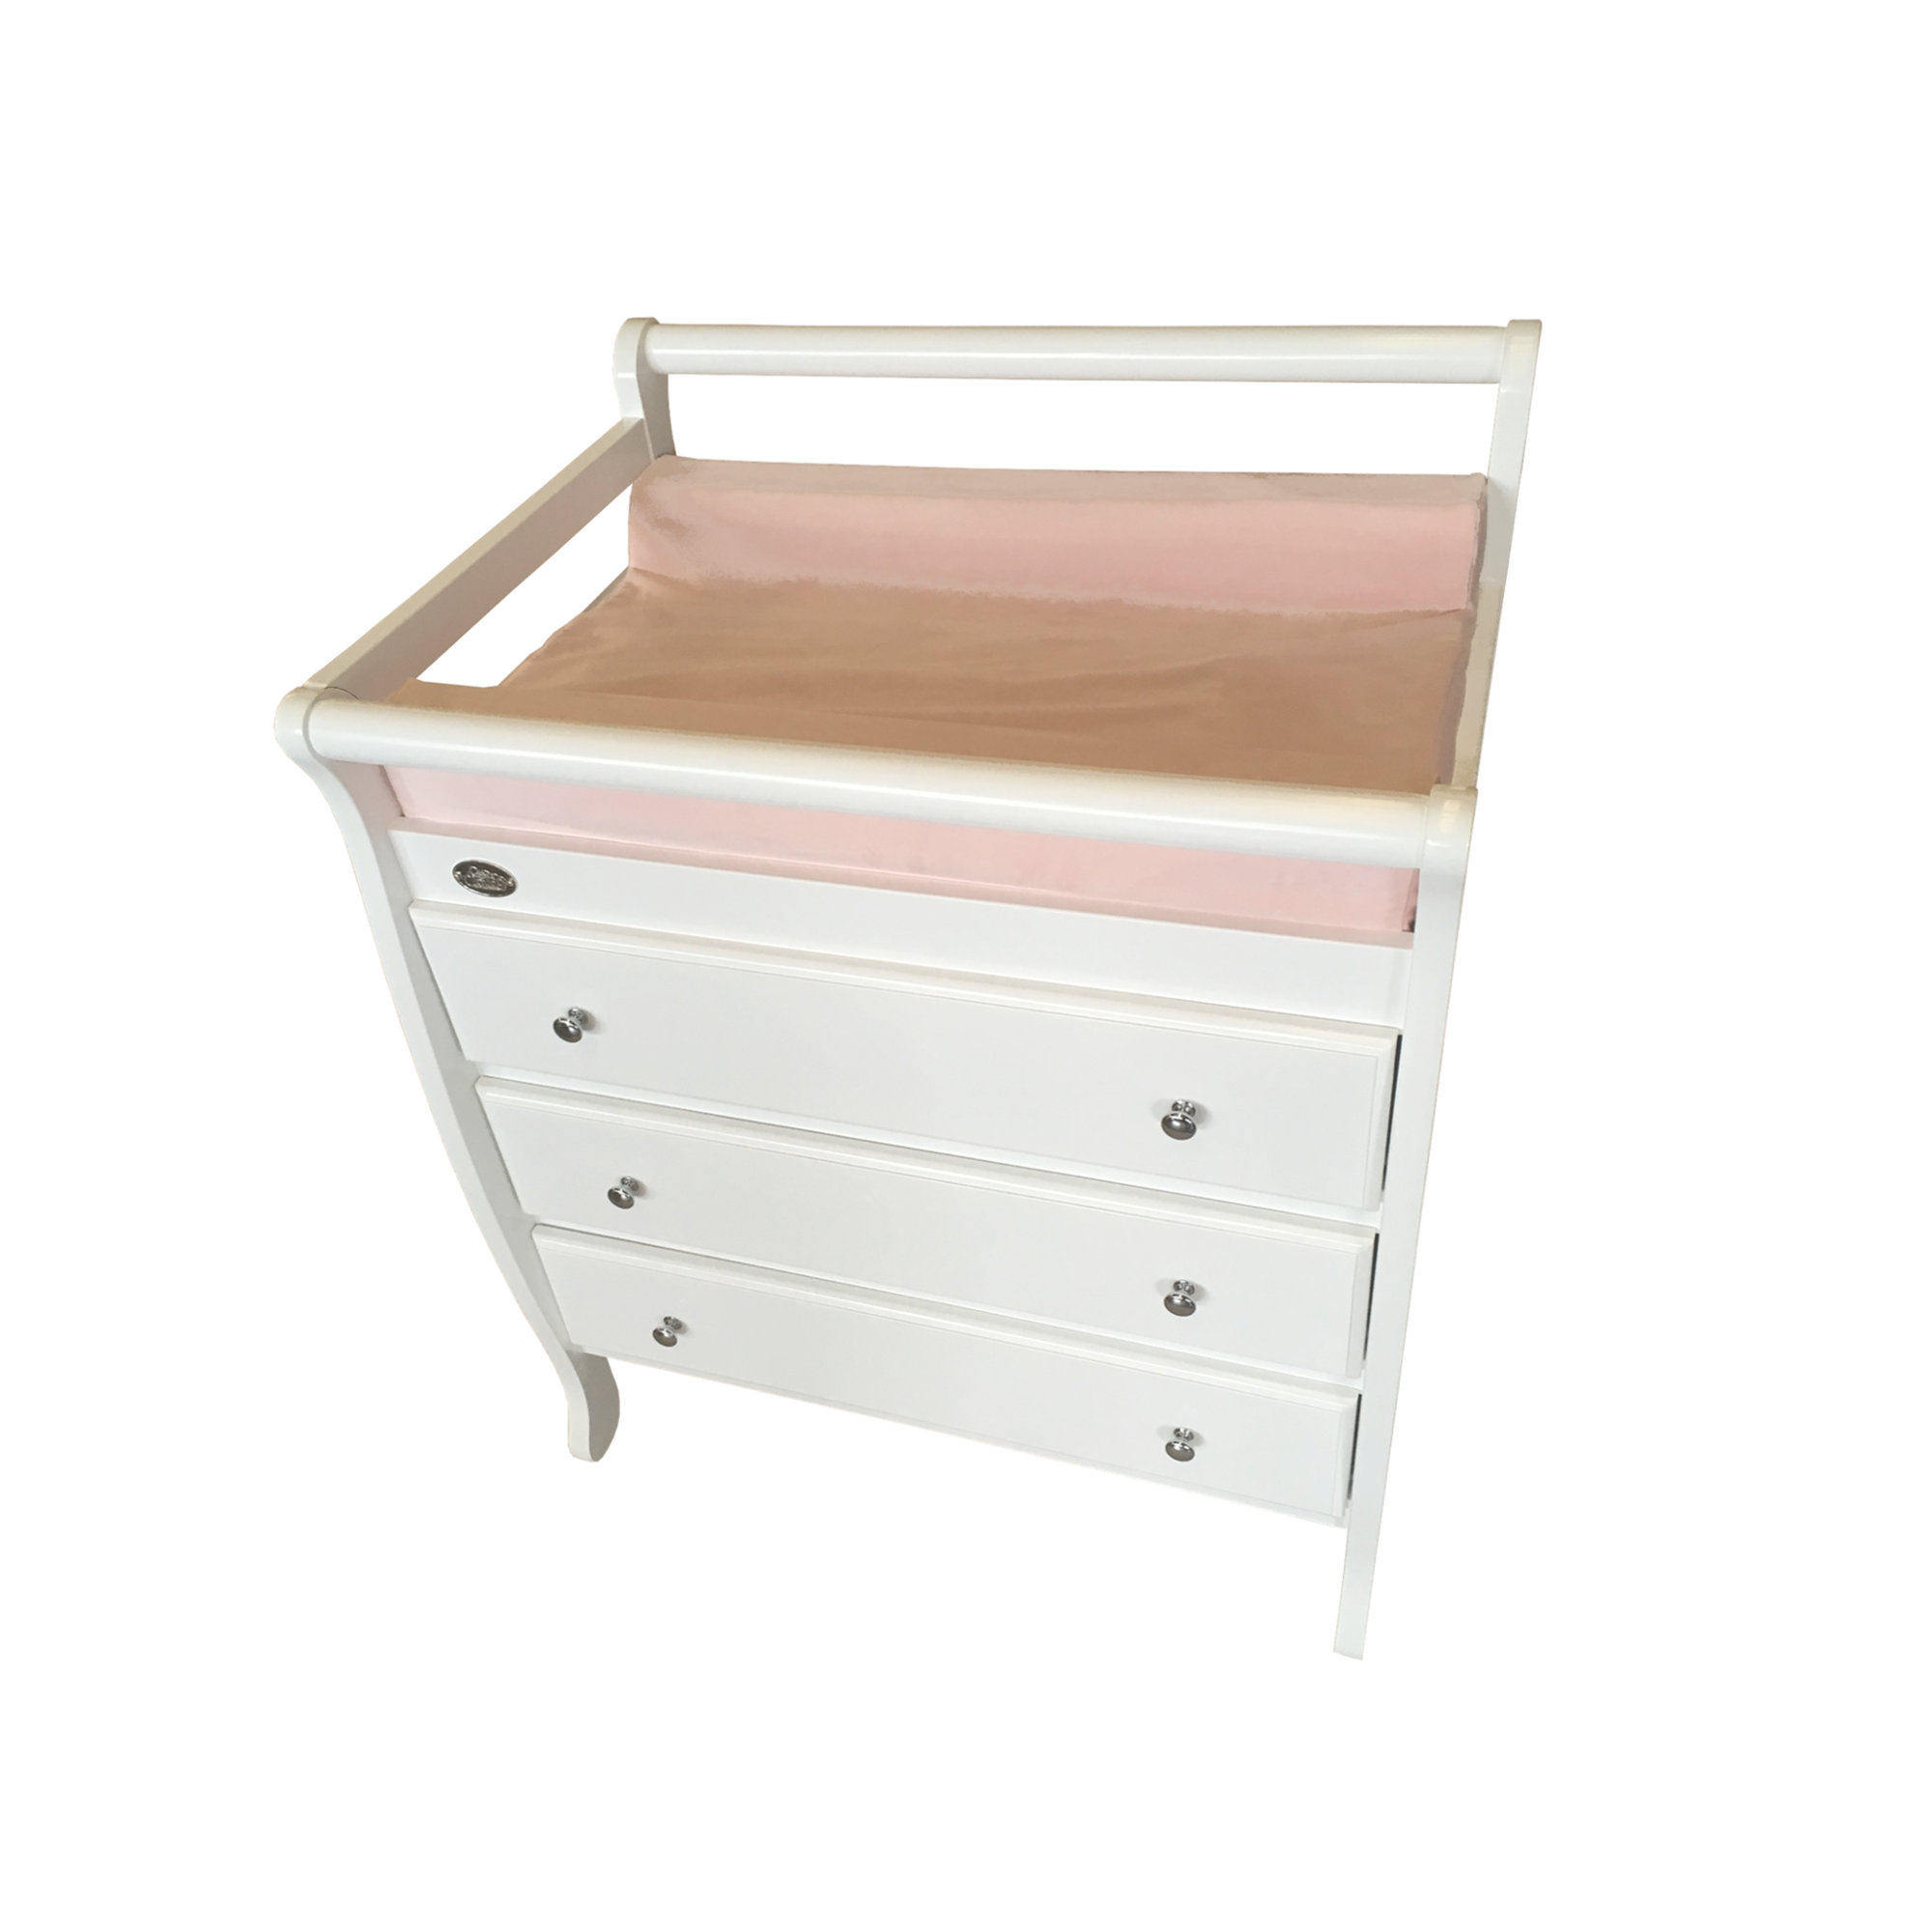 3 Drawer Changing Table with Change Mat Cover from Top Angle